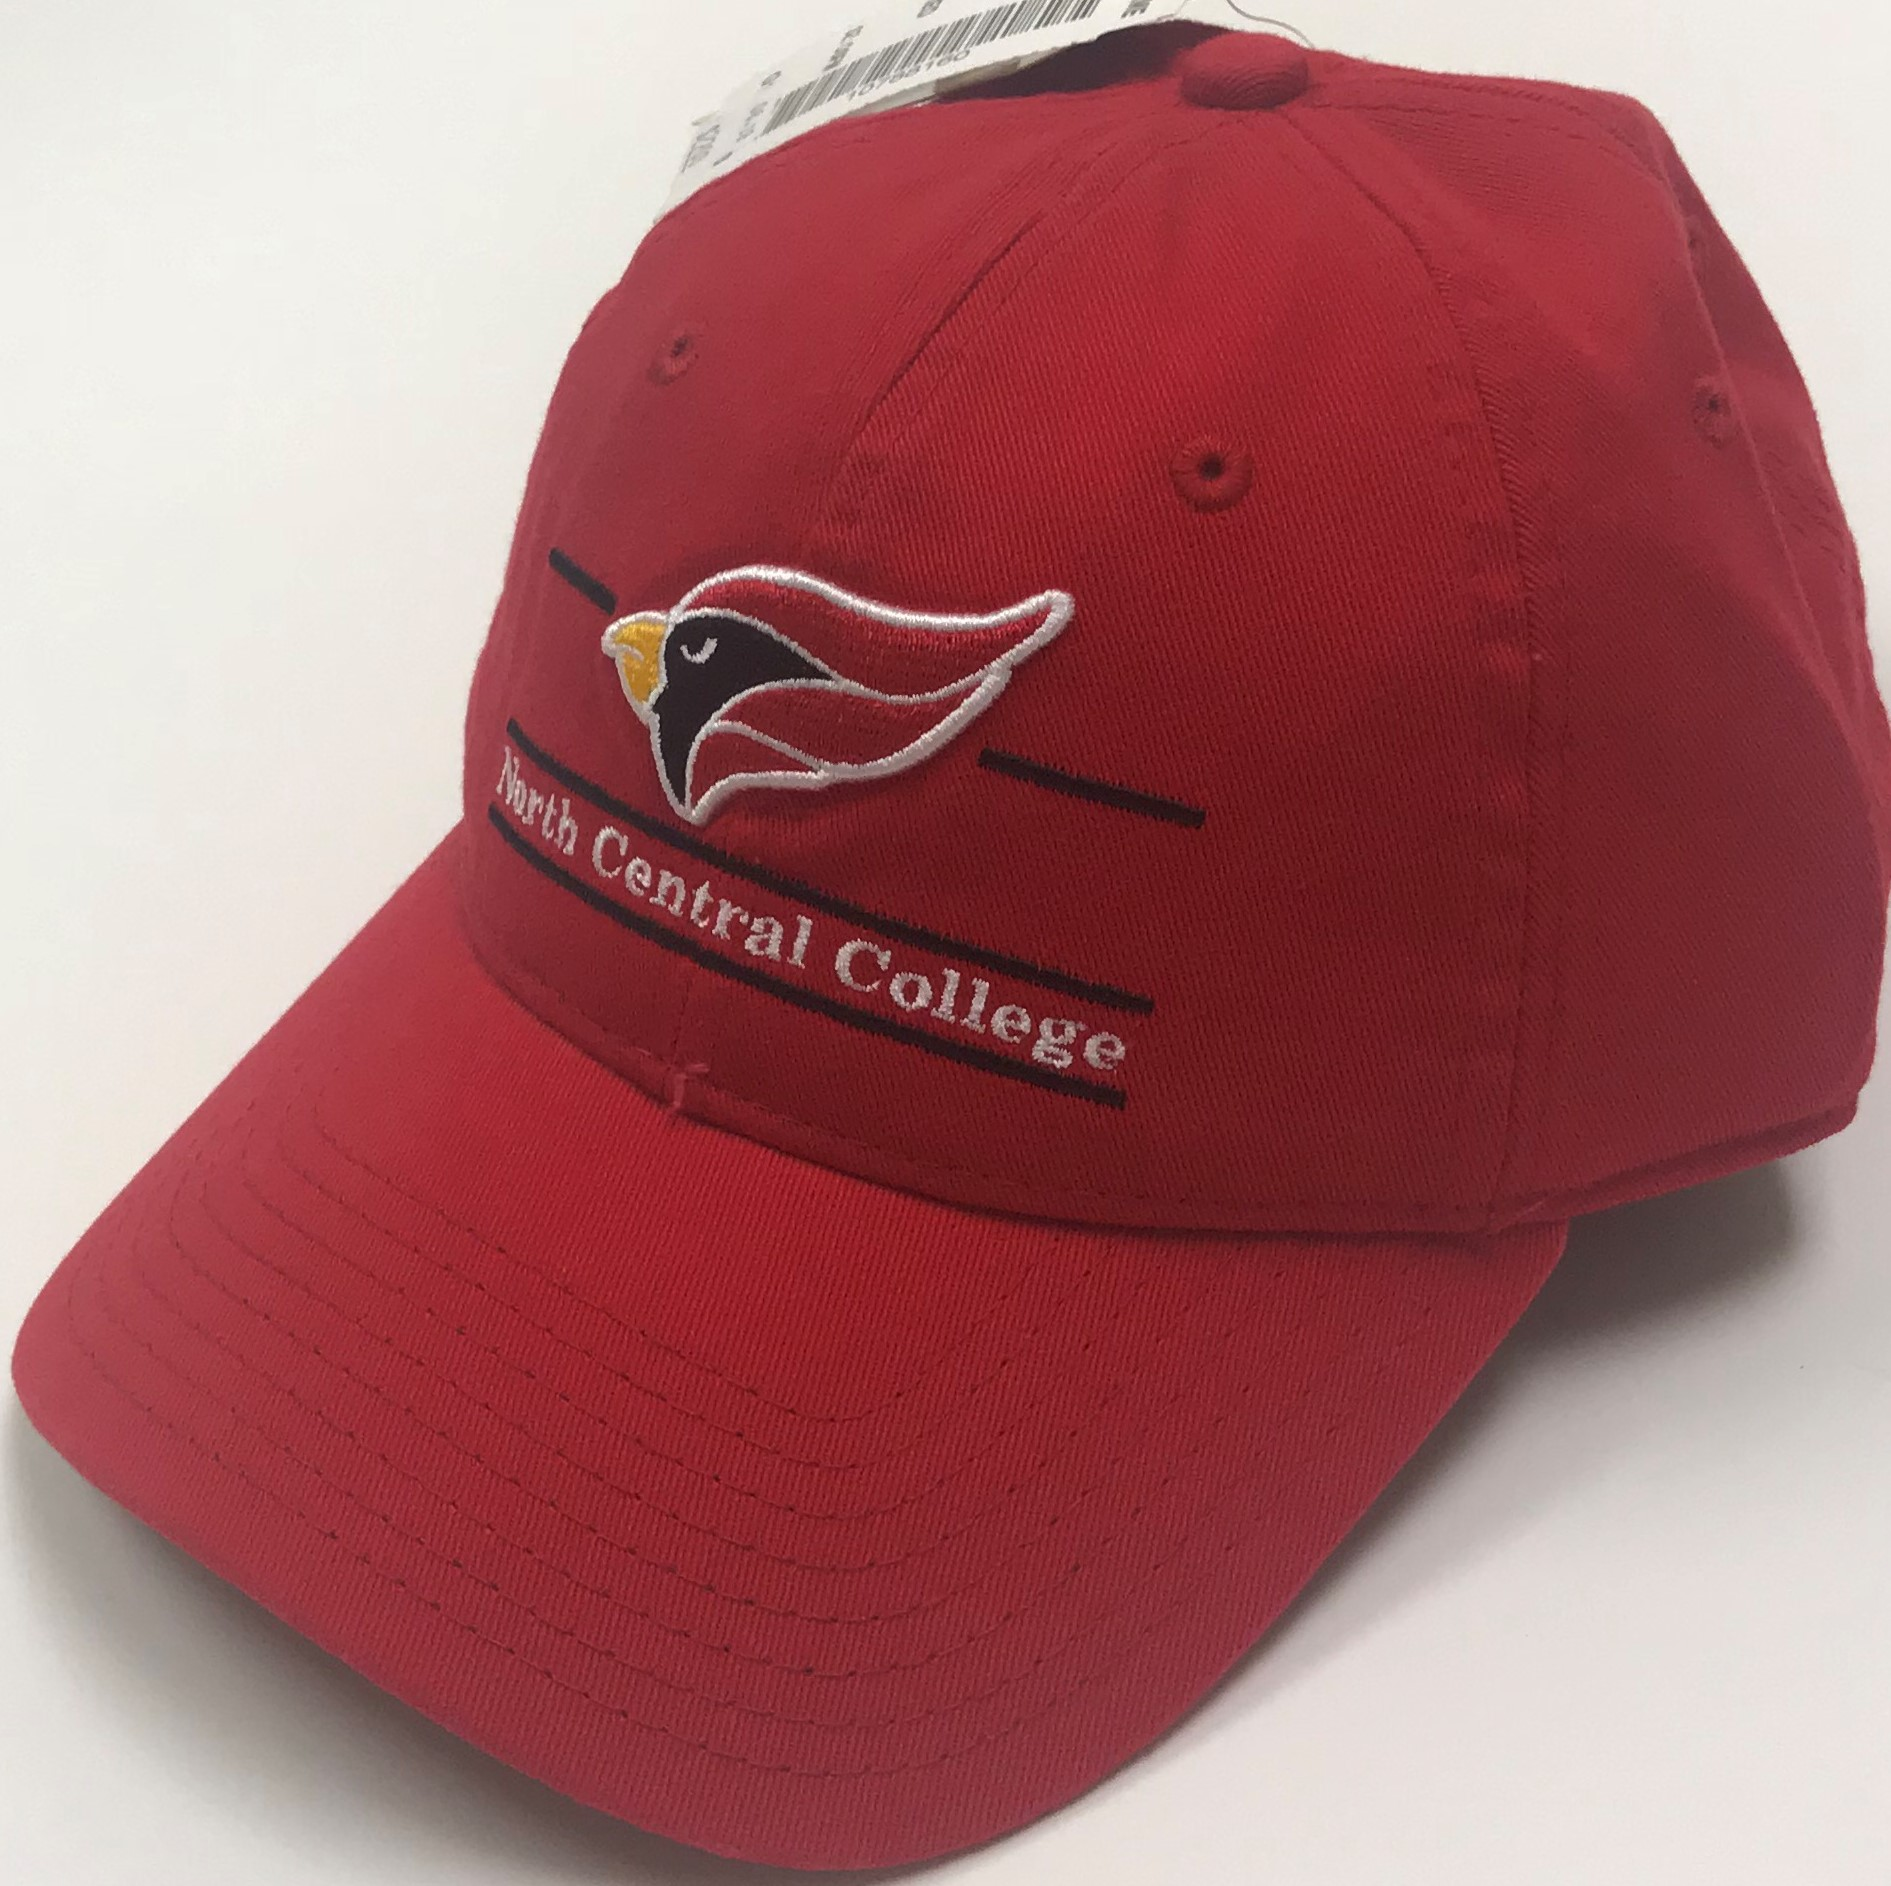 Image for the The Game, Red Adj Hat w/Cardinal product